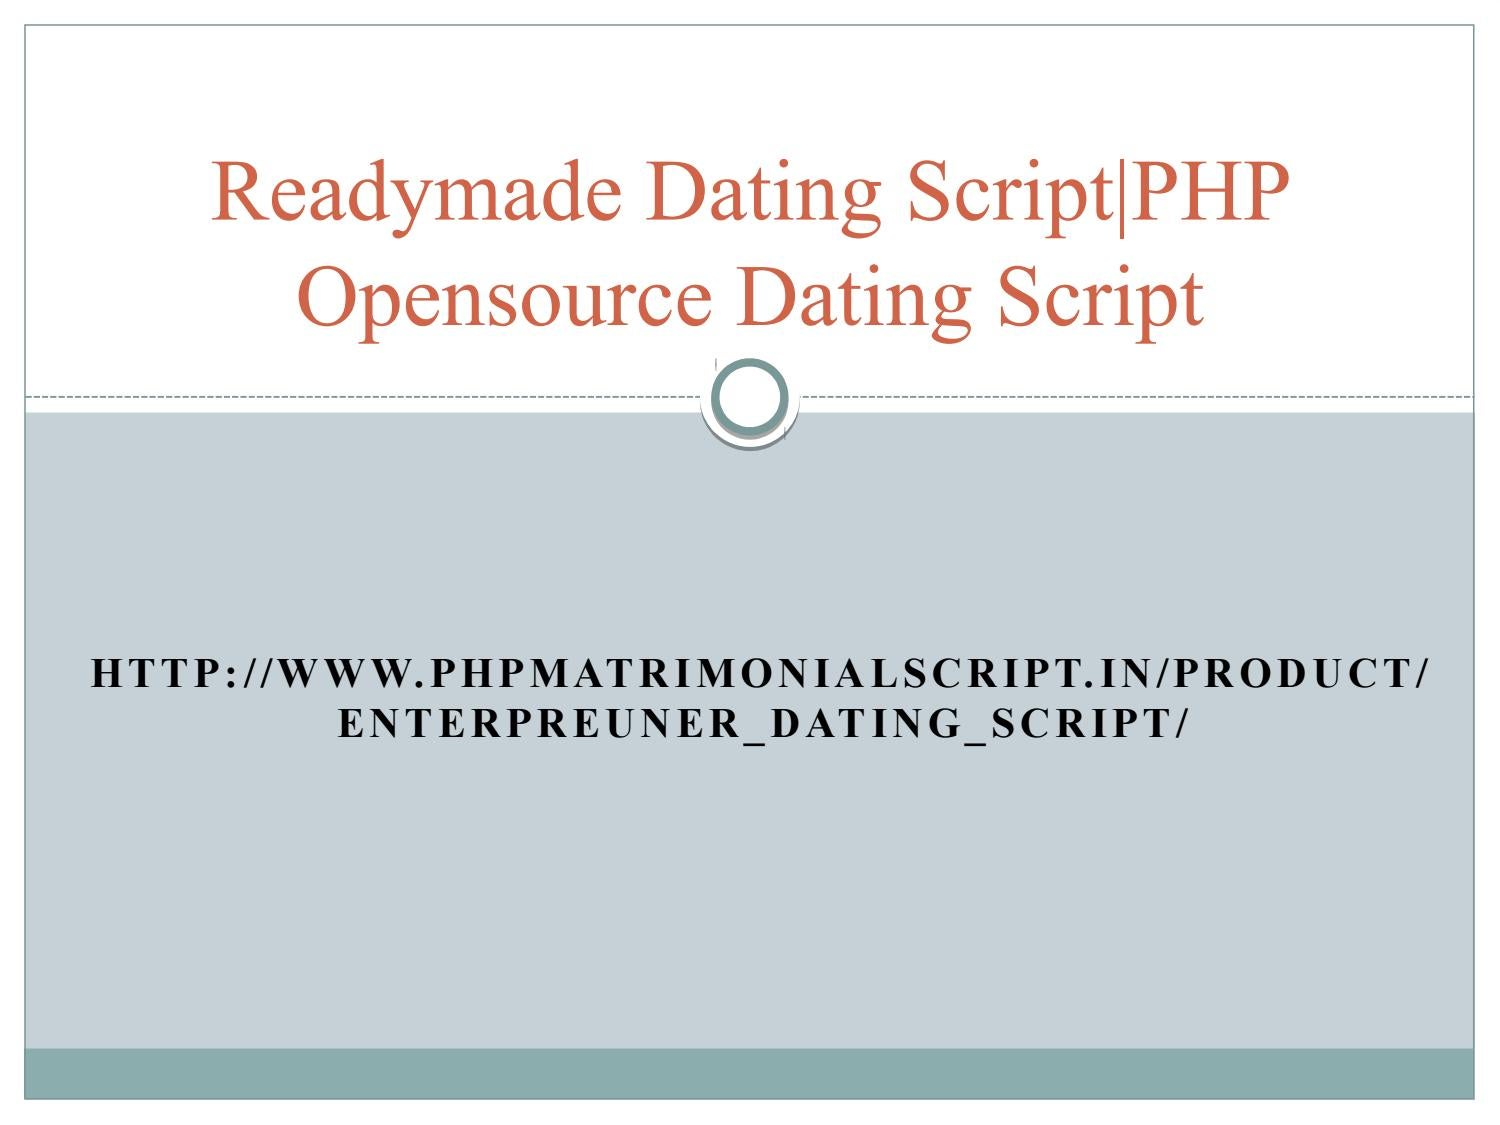 Readymade dating site